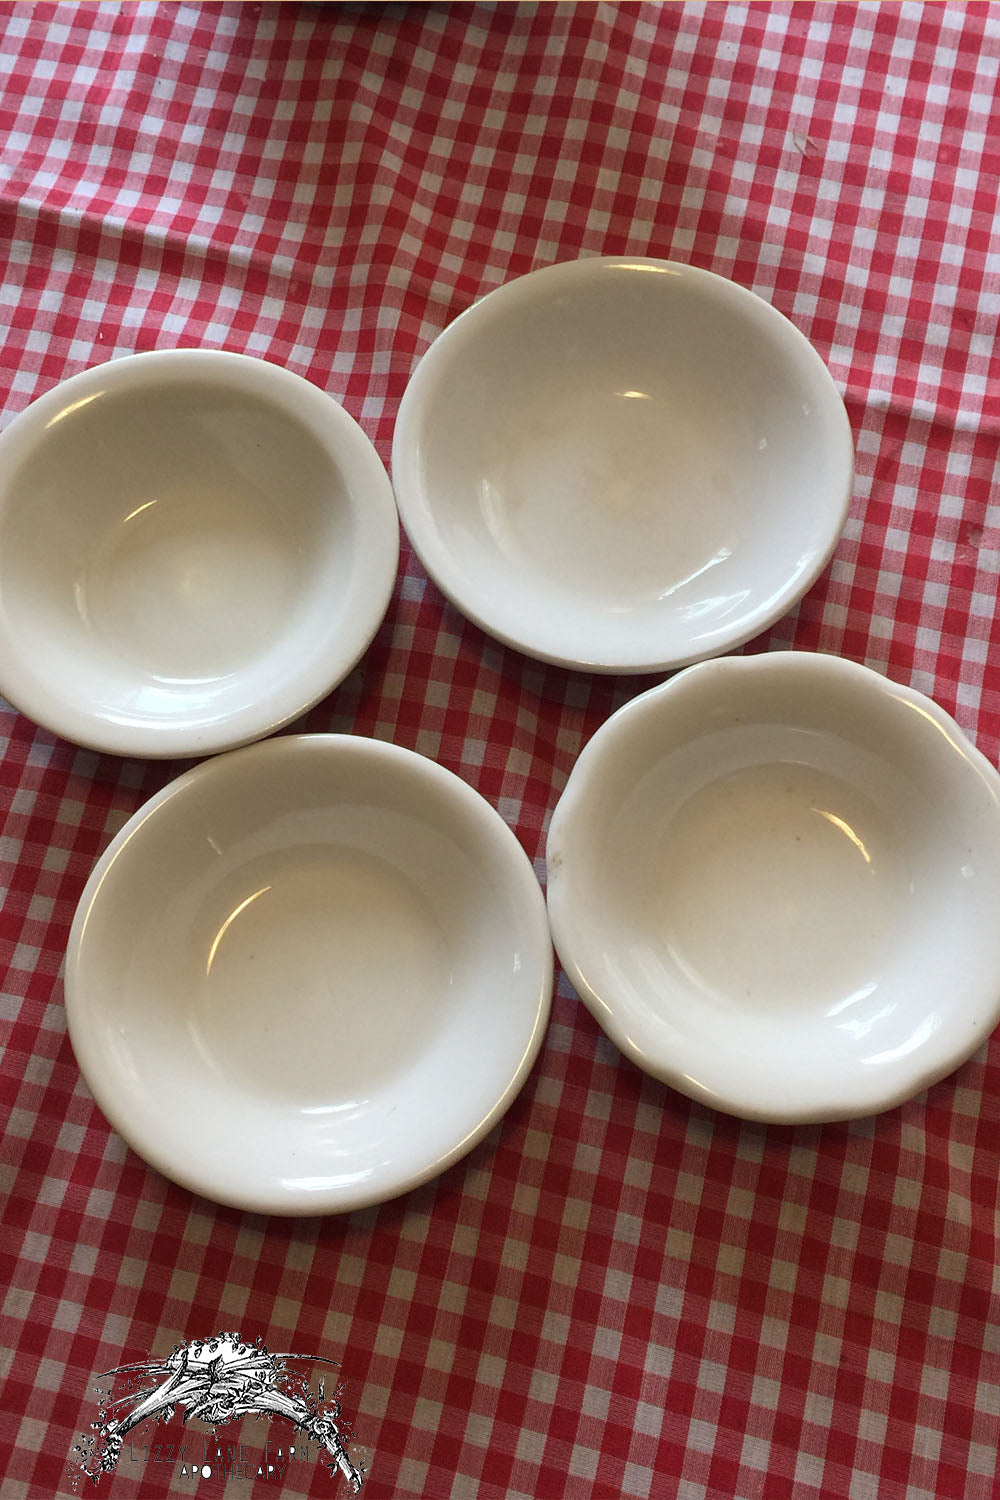 Buffalo China USA-Dessert/Fruit Bowls- mixed set - Lizzy Lane Farm Apothecary